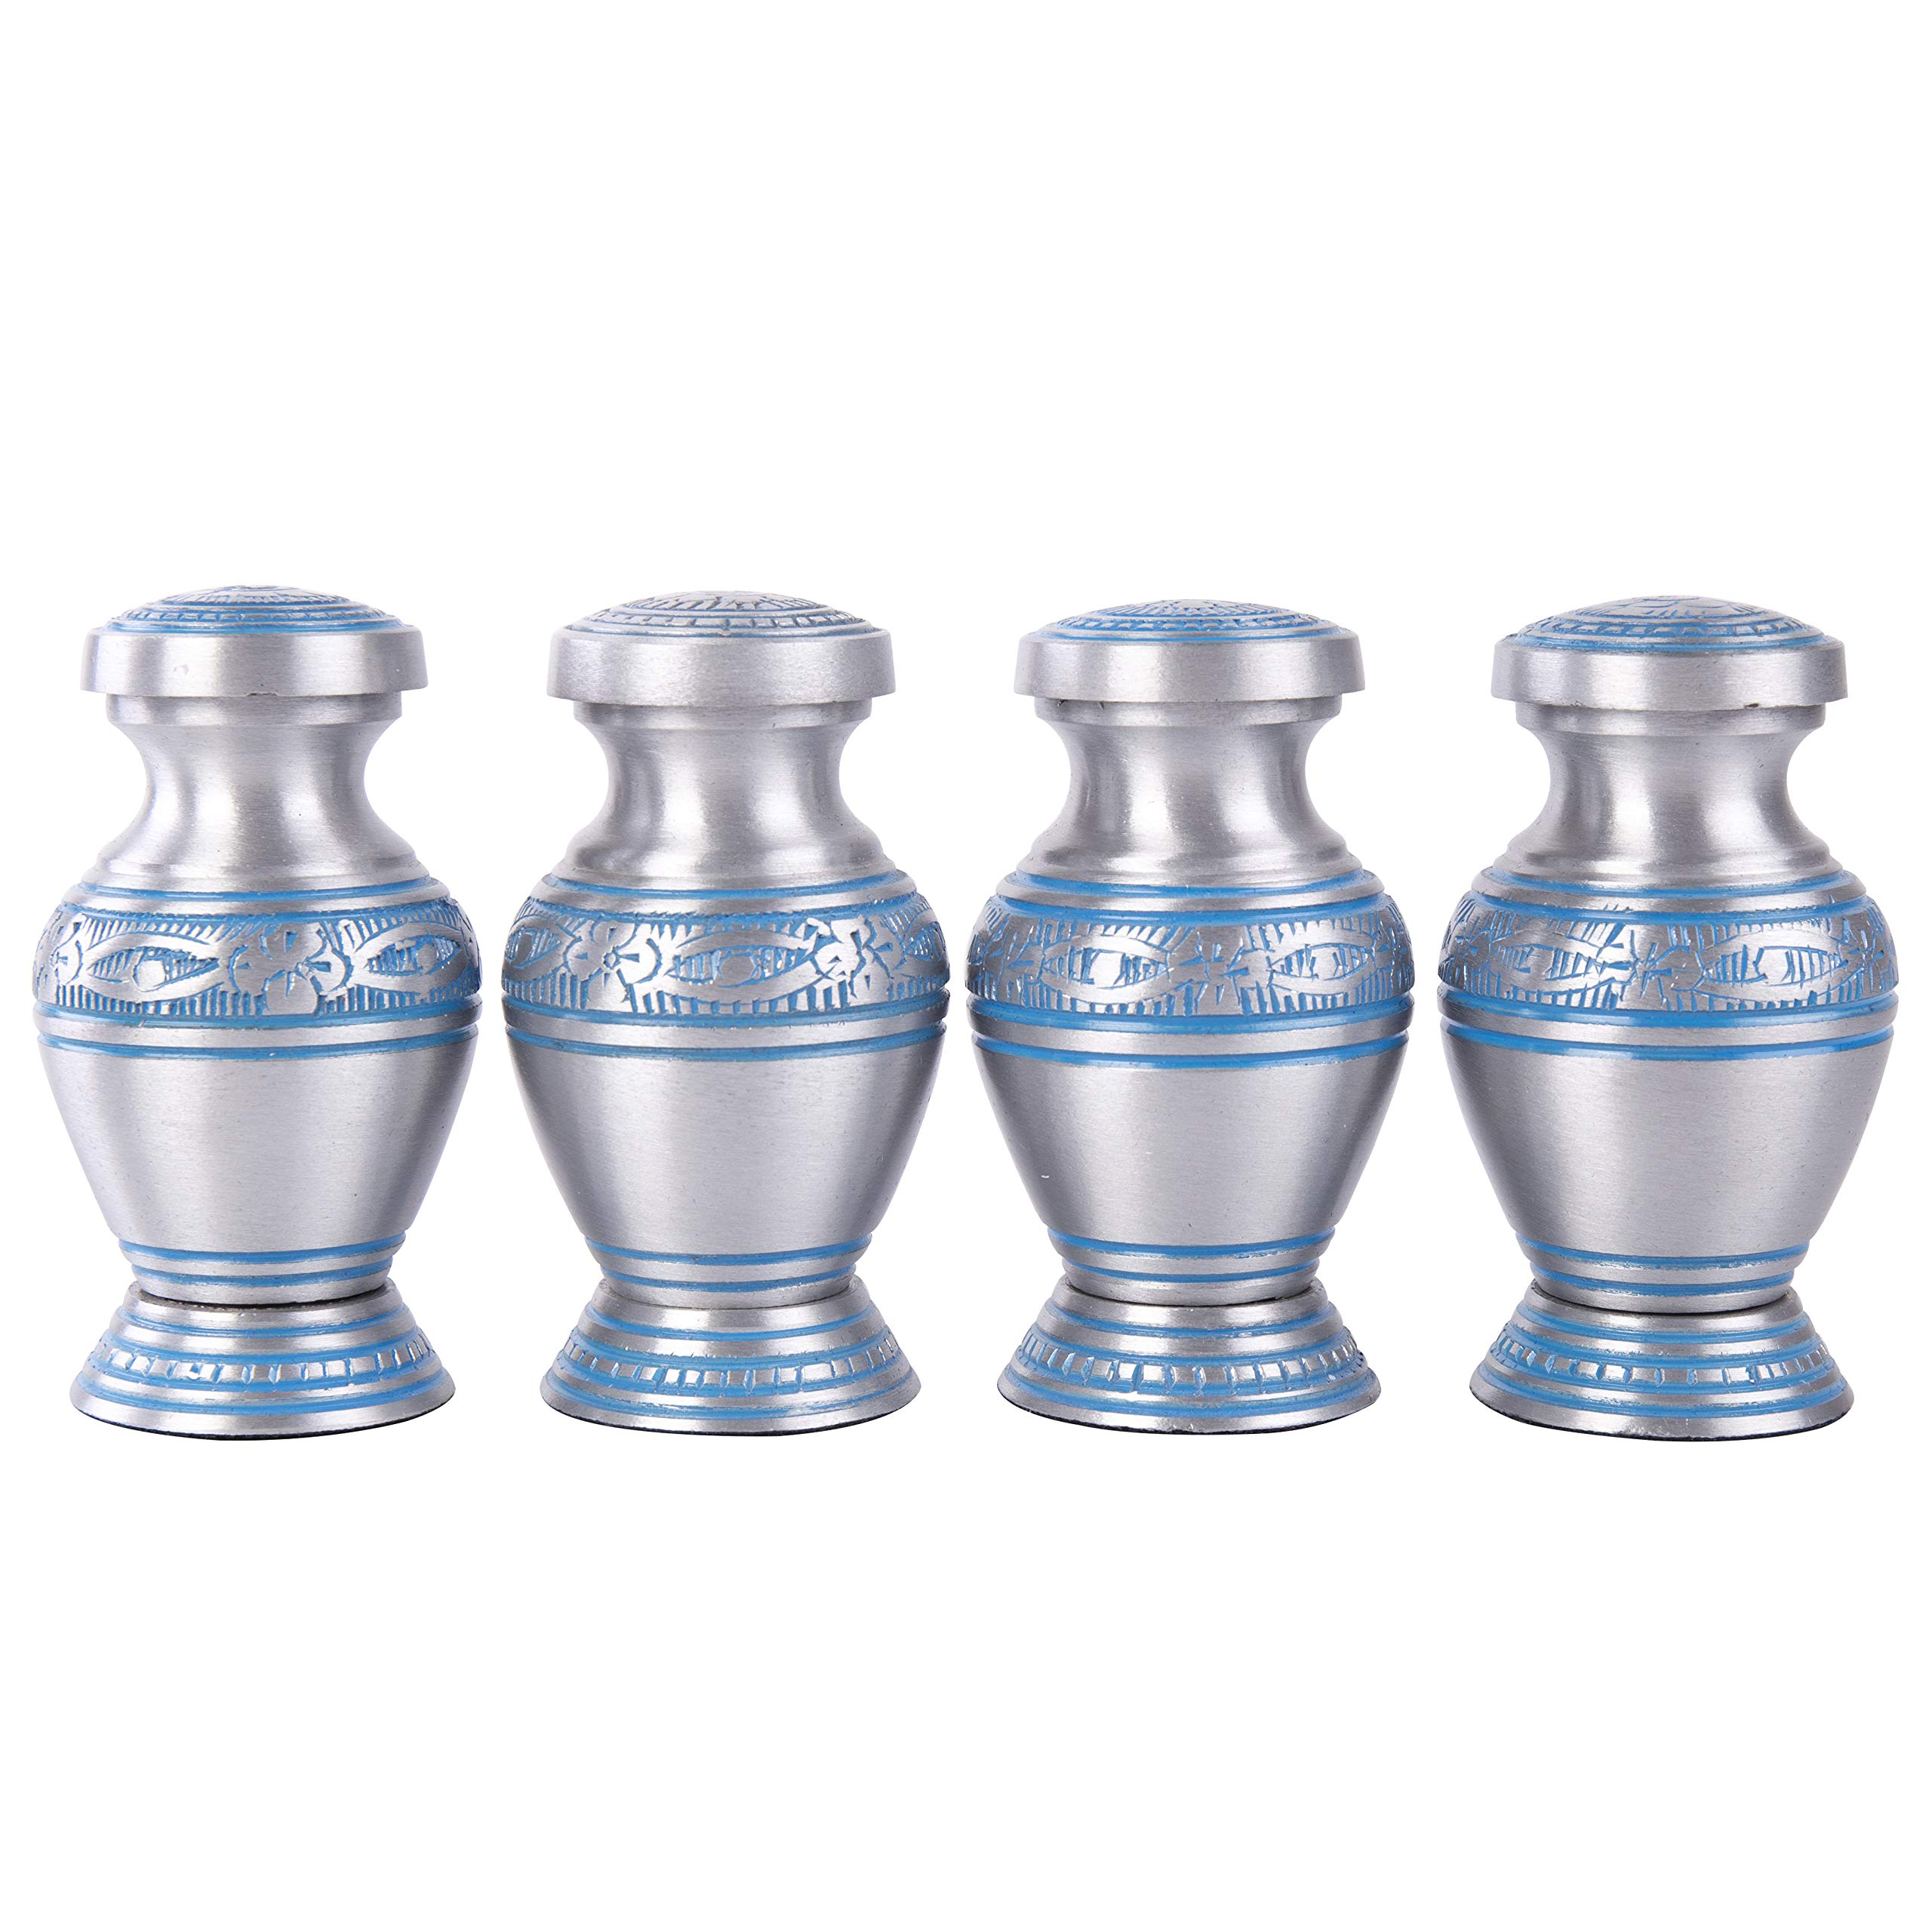 GSM Brands Keepsake Cremation Urns (Set of 4) - Mini Funeral Memorials in Silver Design with Box Meant for Sharing of Token Amount of Ashes (3 Inch by 2 Inch) by GSM Brands